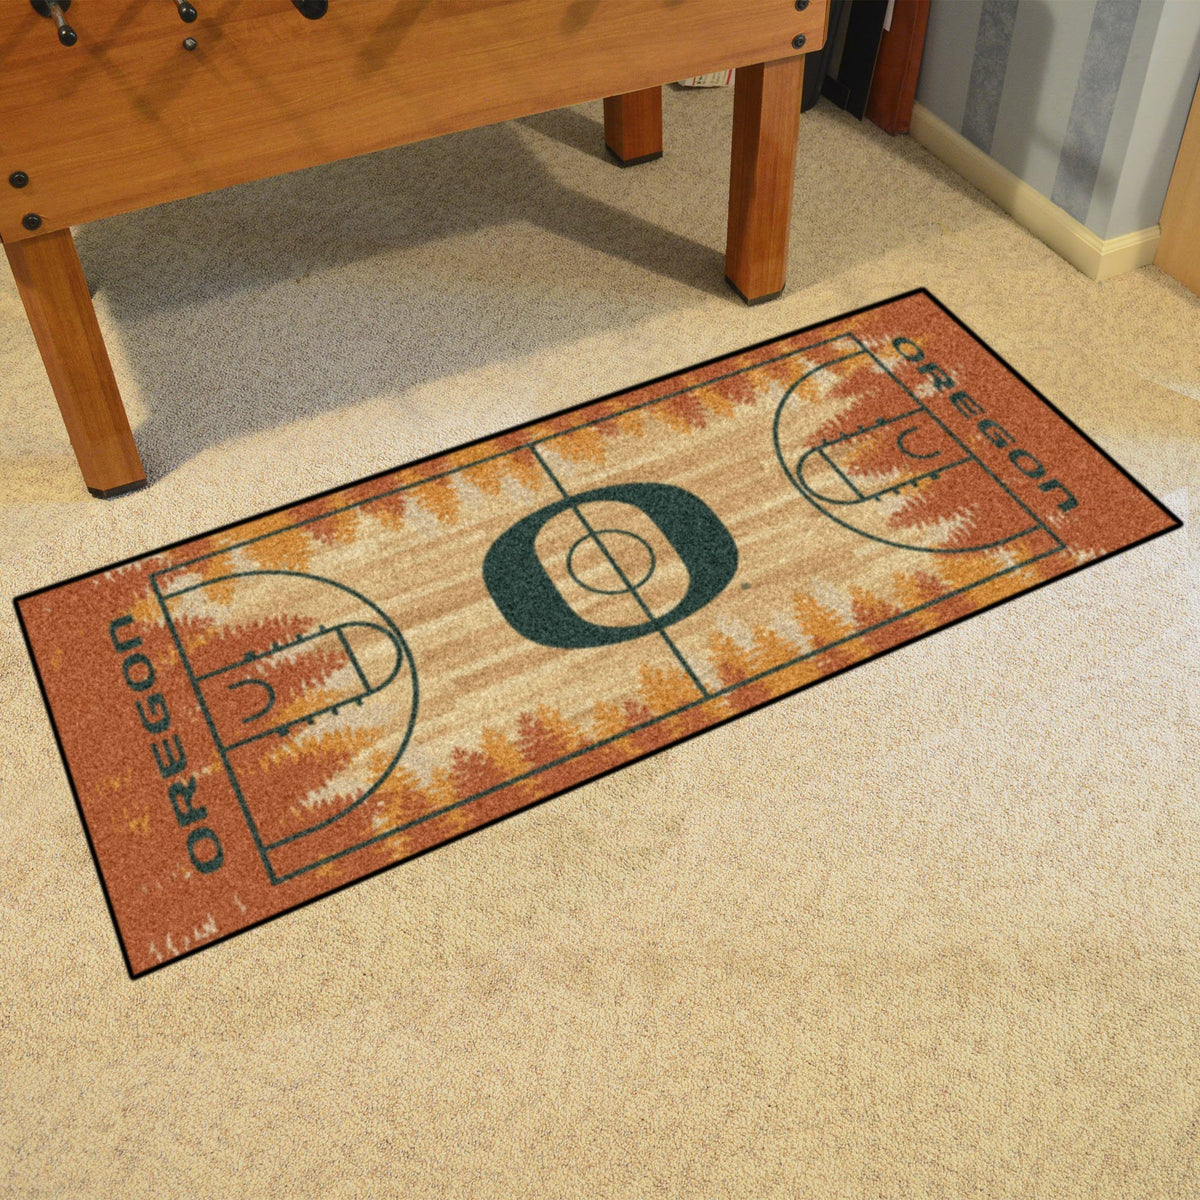 Collegiate - NCAA Basketball Runner Collegiate Mats, Rectangular Mats, NCAA Basketball Runner, Collegiate, Home Fan Mats Oregon